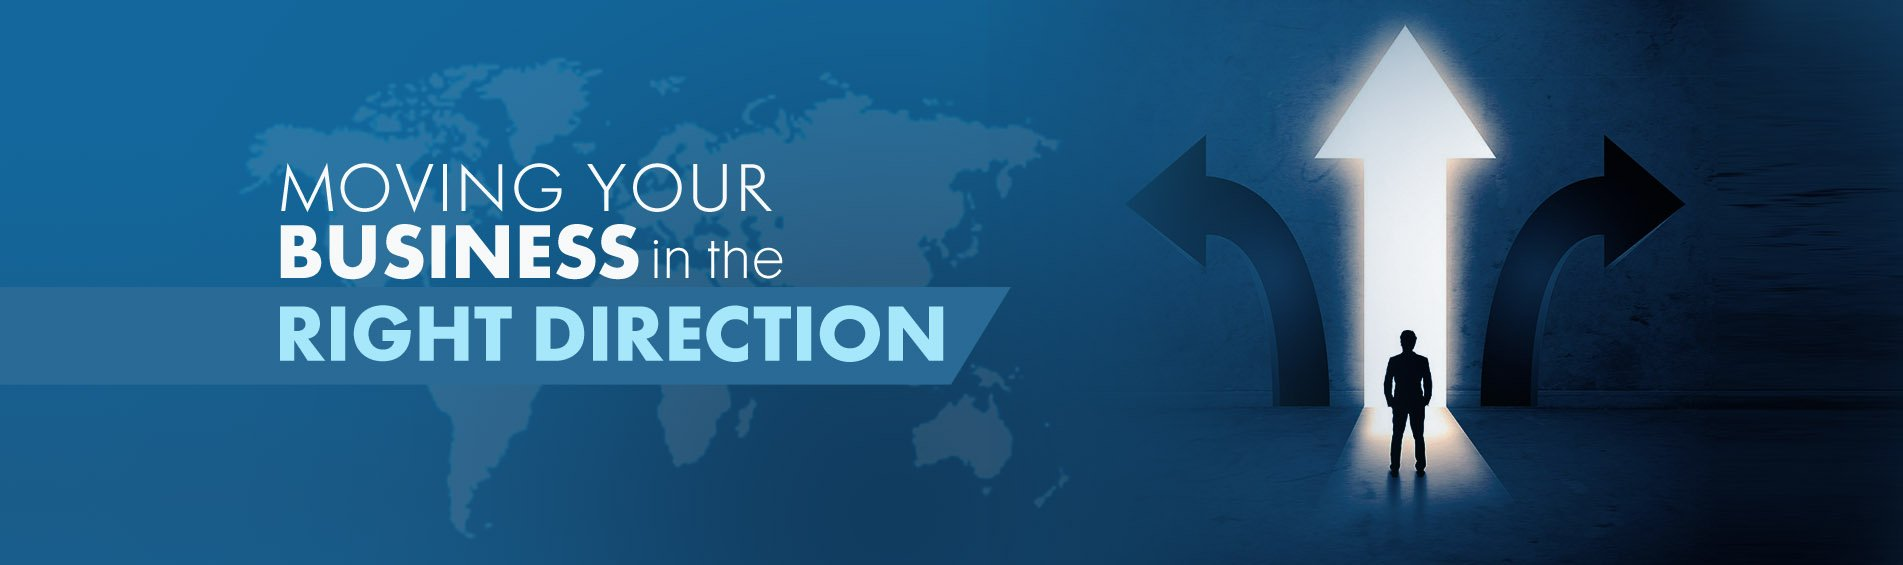 Moving Your Business in the Right Direction